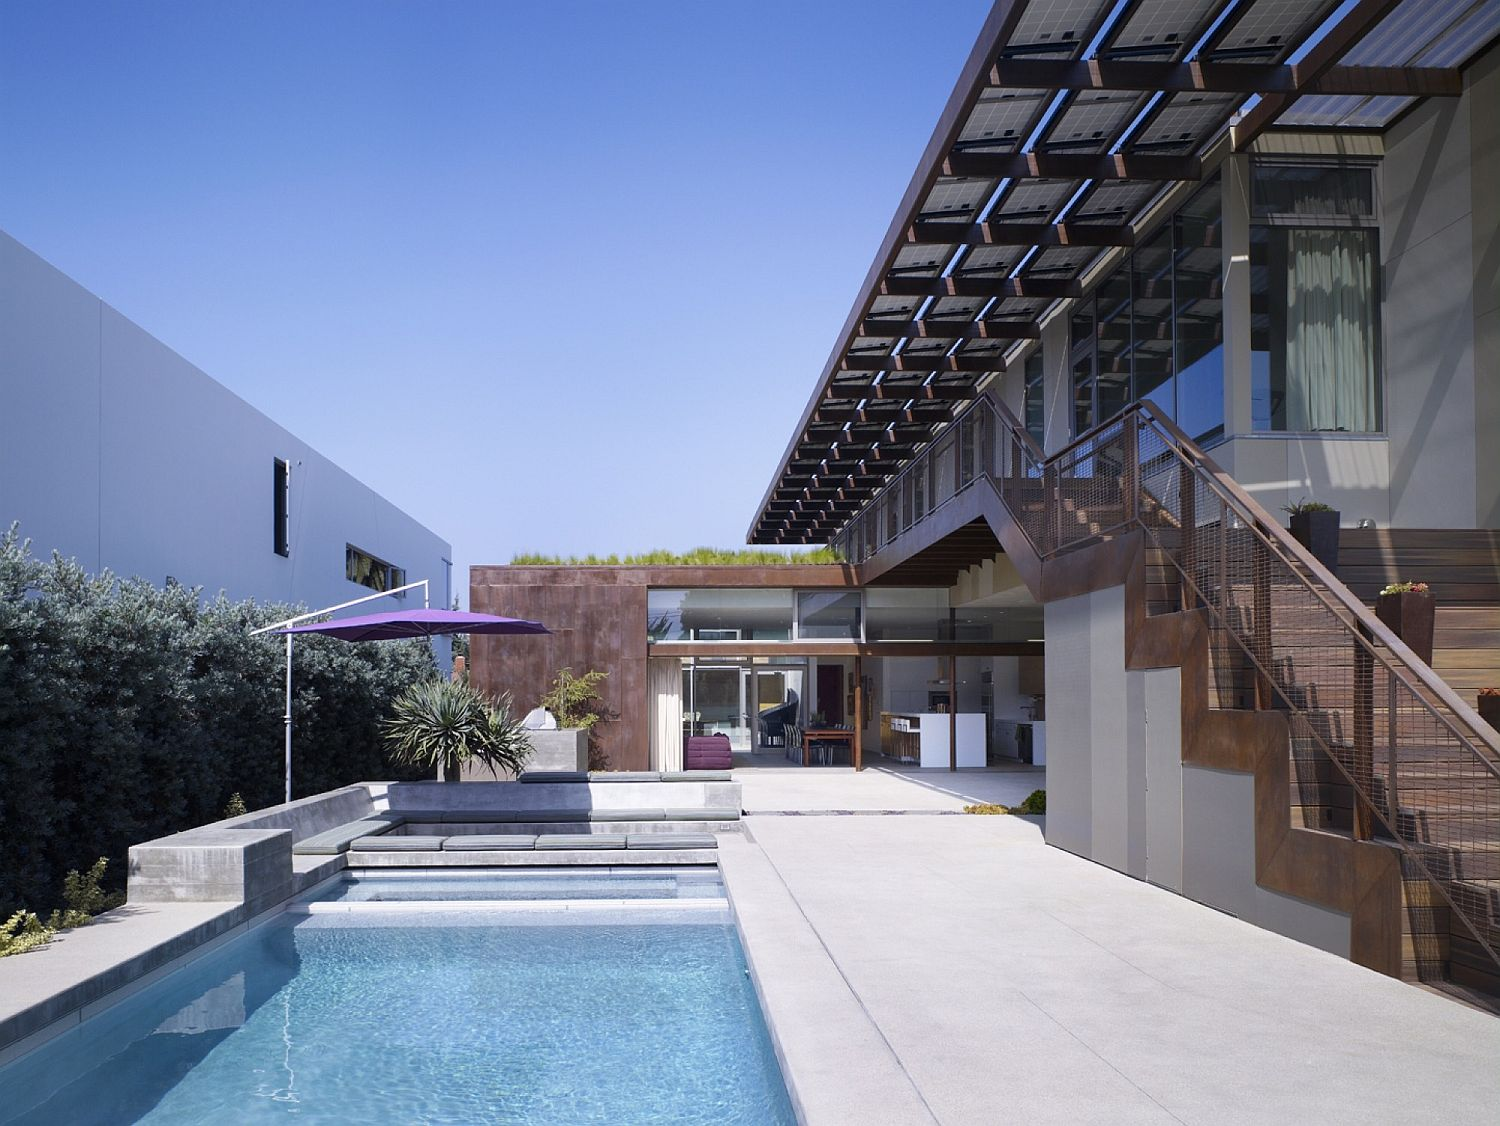 Central-courtyard-pool-and-open-social-zones-at-the-Yin-Yang-Residence